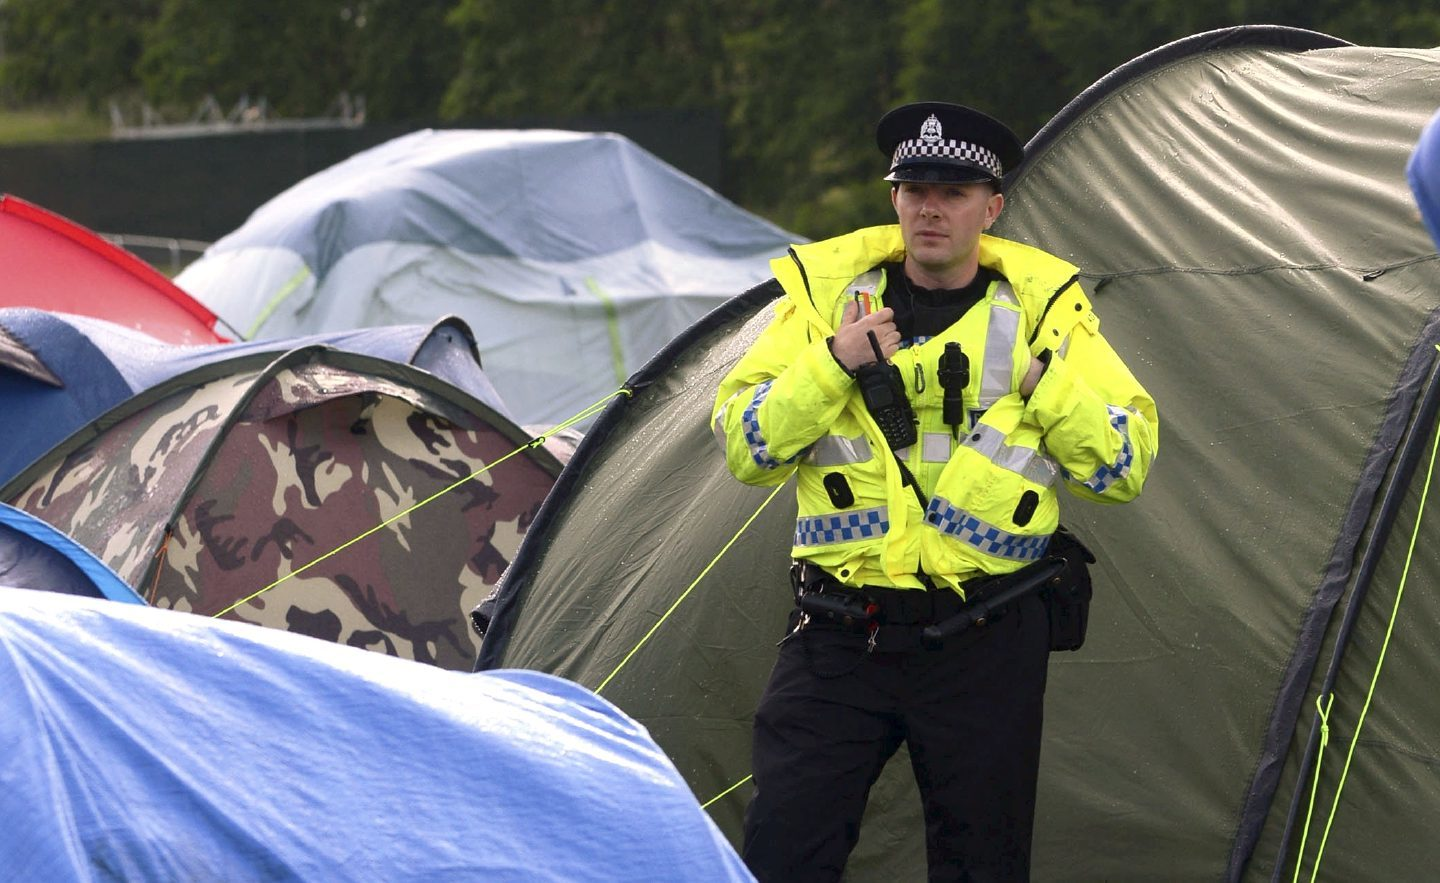 Police in the campsite at T in the Park.